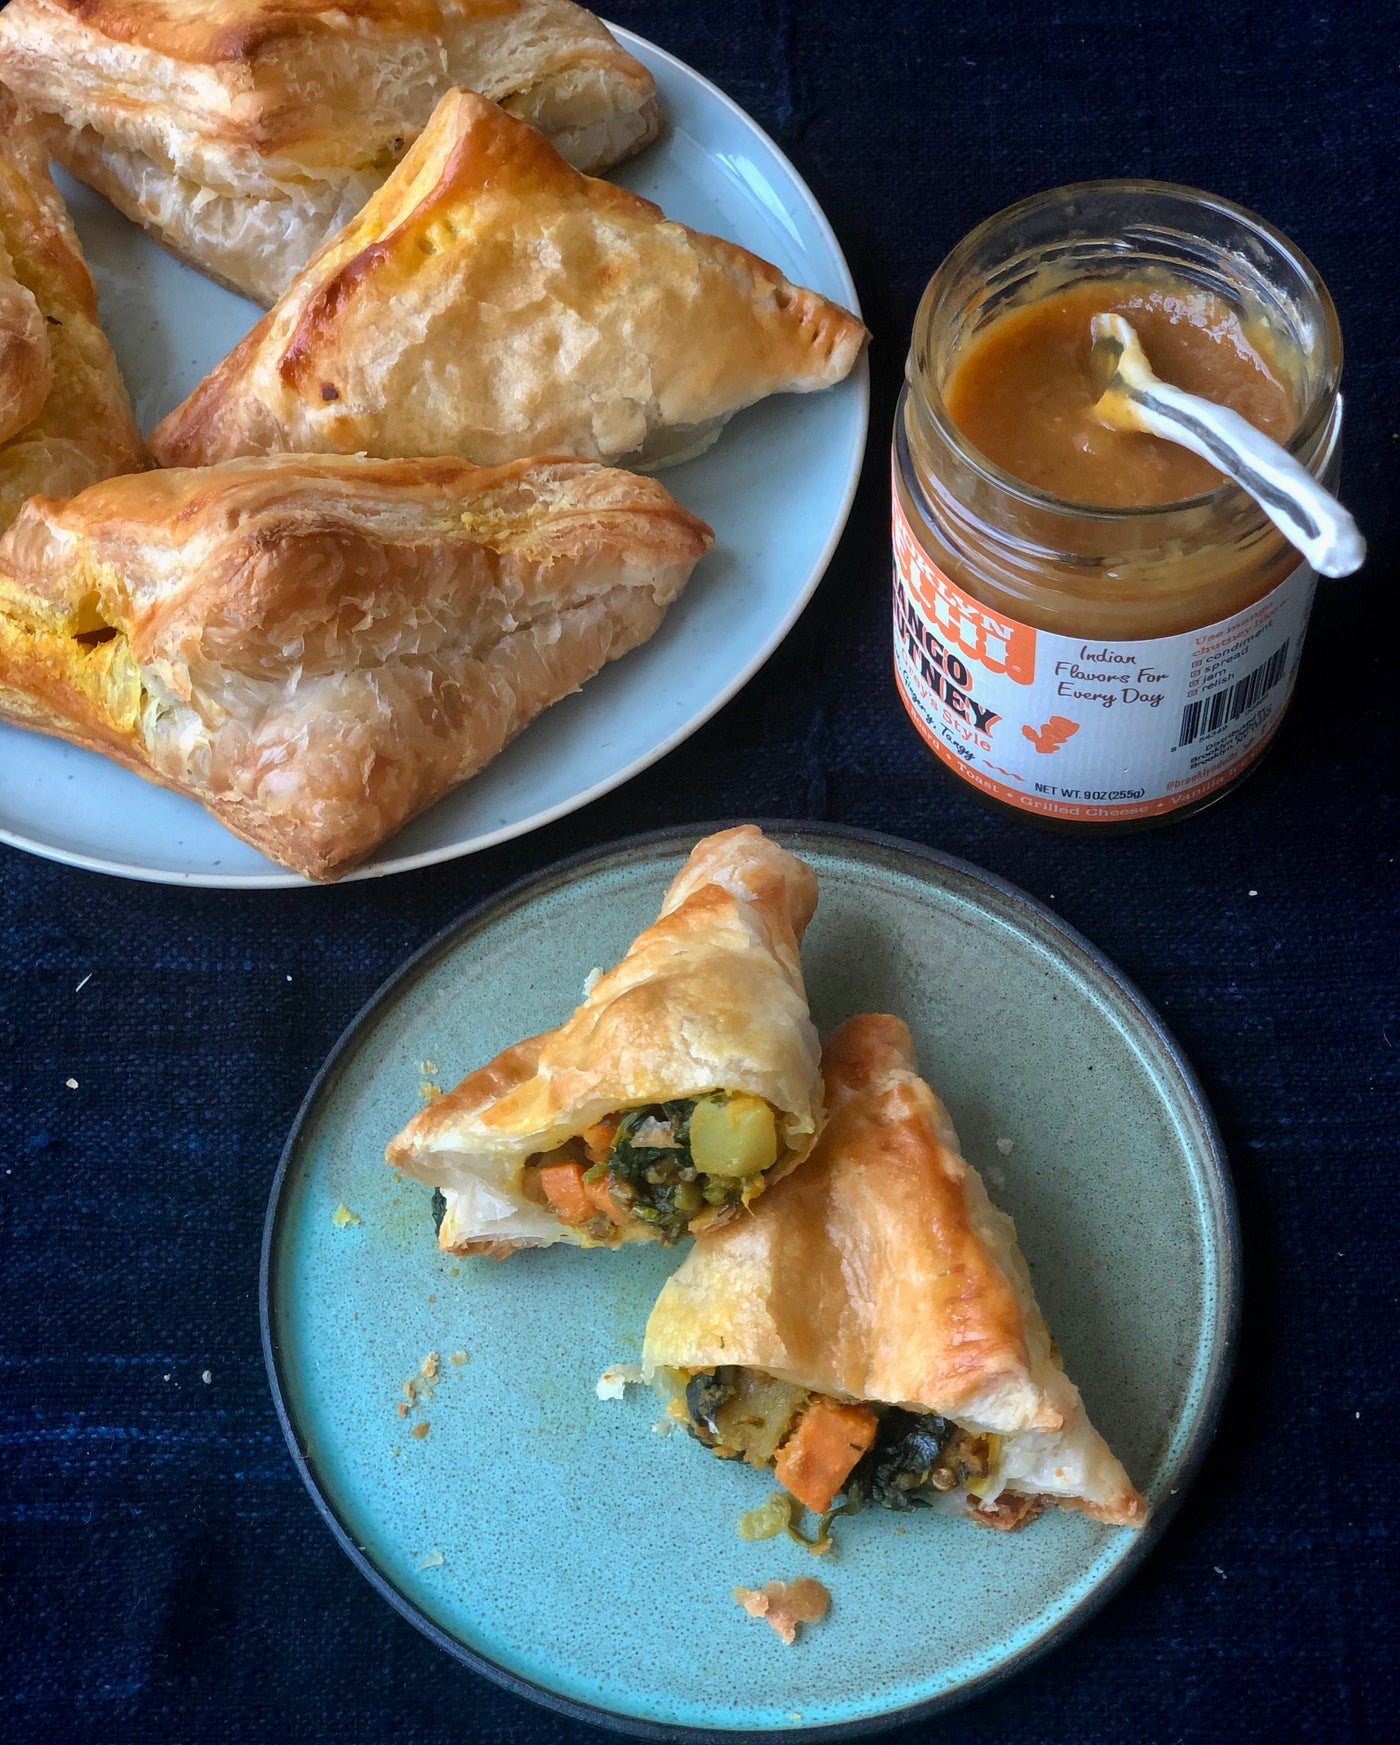 Yewande's Spicy Vegetable Puff Pies With Mango Chutney Dip {RECIPE}